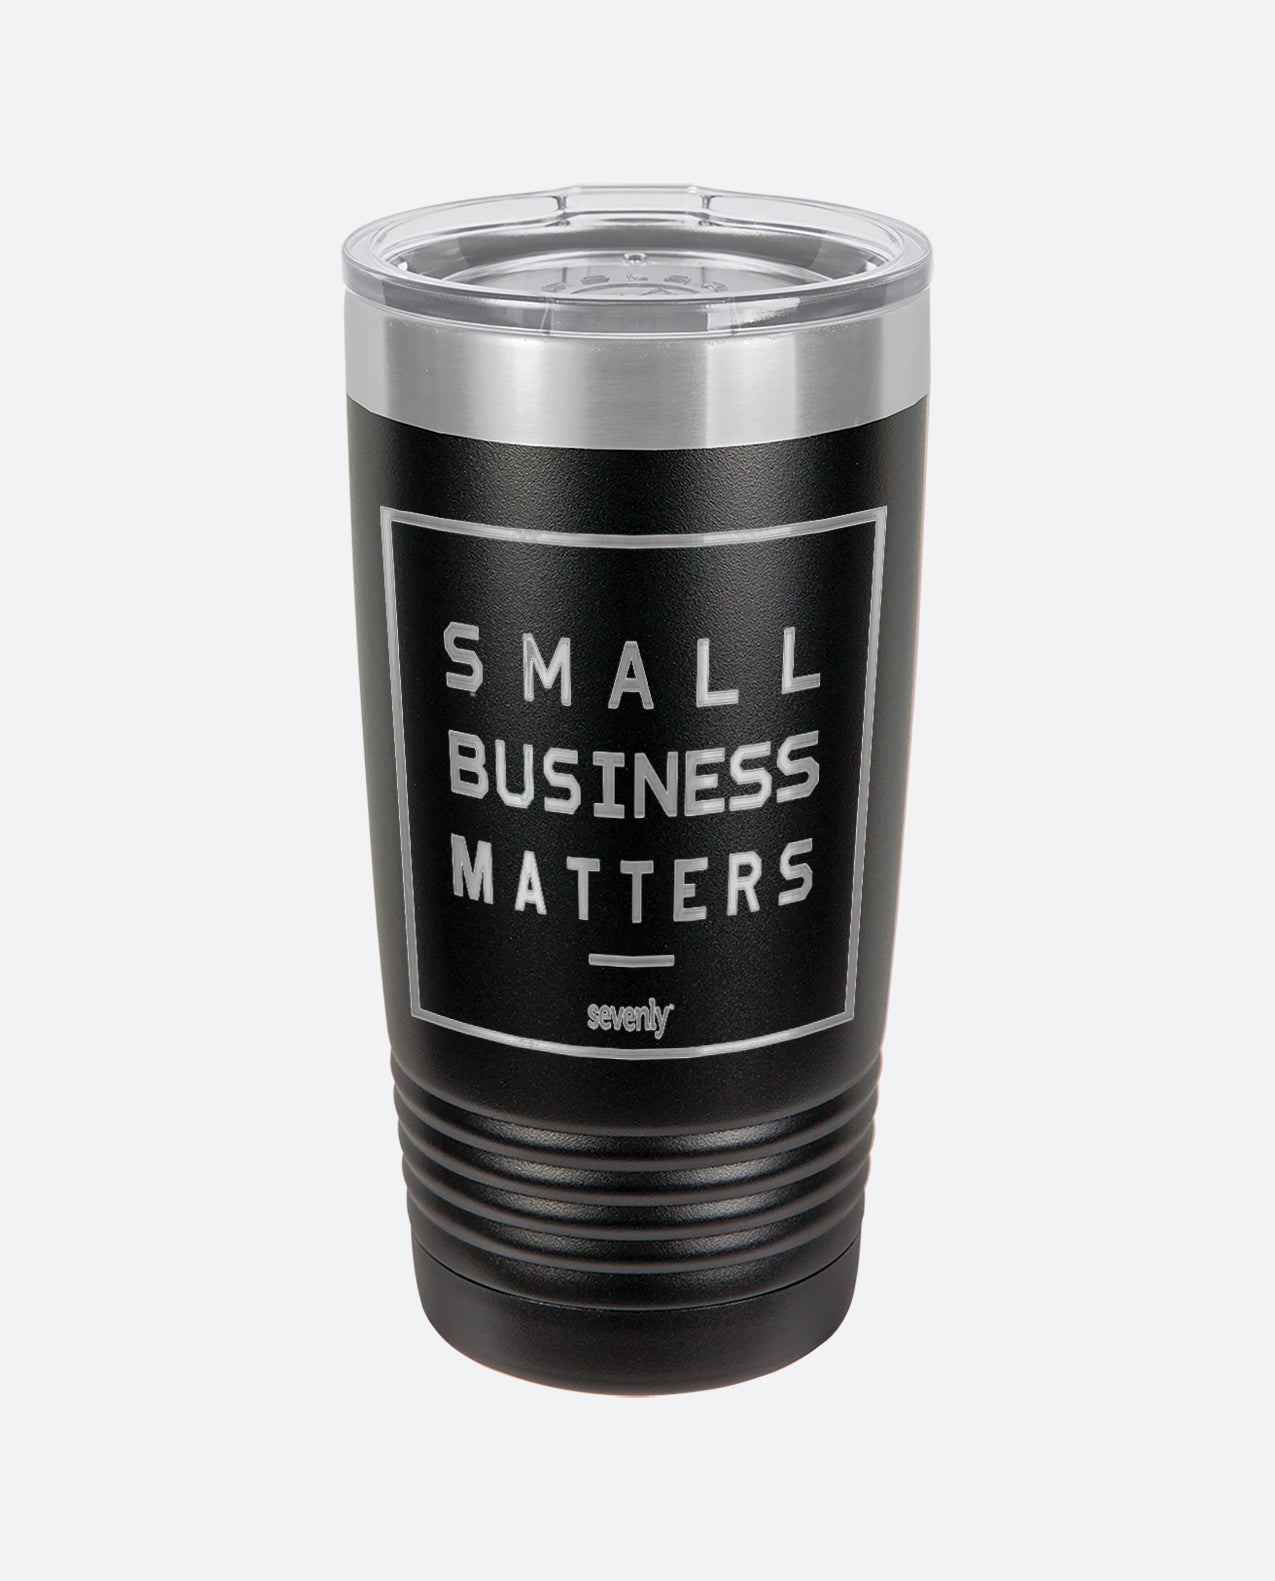 Small Business Matters - Tumbler Drinkware